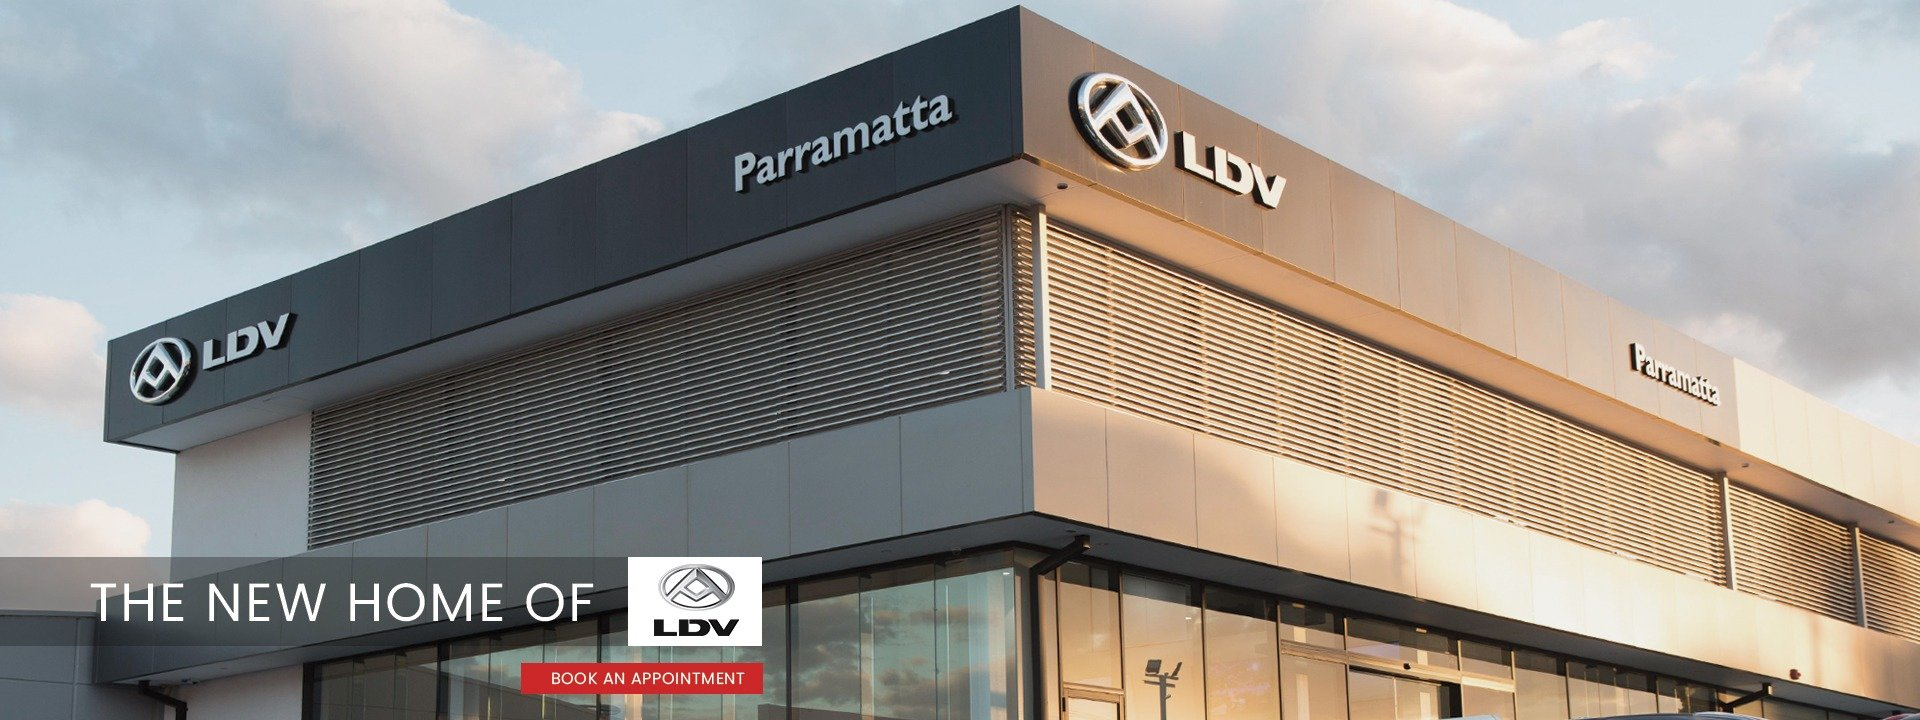 ldv_parramatta_ldv_vehicles